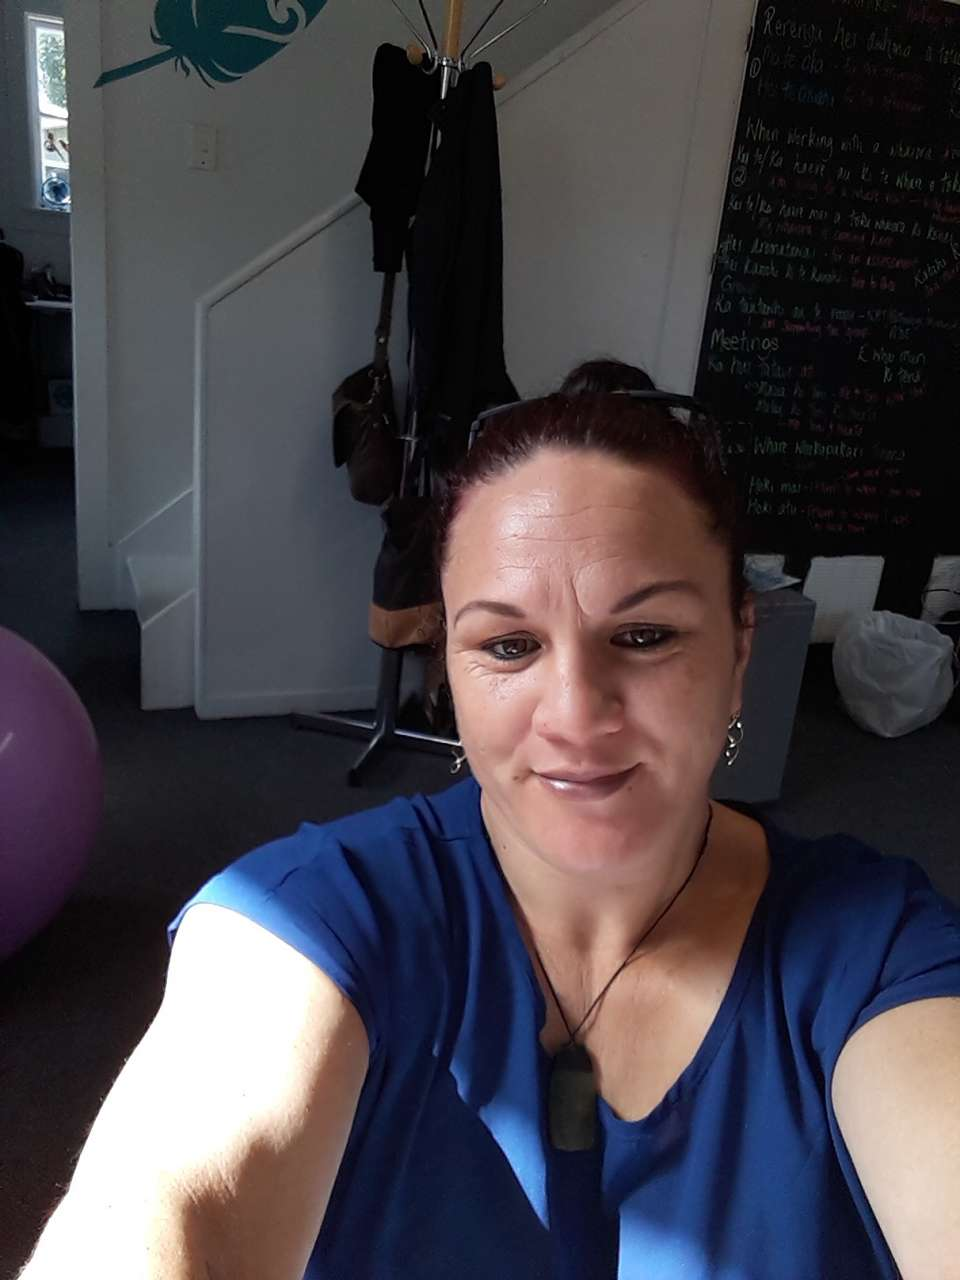 Activity completed: Move<br />Amount: Moved for 15mins<br /><br />Mauri Ora whanau been a long time since I have been on this page....my journey has been long and hard filled with many ups and downs trials and tribulations,,,,losing my Nan and father this month has been a surreal thing to deal with...many tears have been shed,,,many more to come,, the journey of relaspe in it self is one I have had to own accept over the last 2 months.. something that is hard to own especially when our own expectations of not failing is so important to self and to our own thought of what other people expect...my only true advise to any whanau out there whakama shamed in self of owing relapse... is don't be to hard on your heart mind and soul we all have been through the struggle and know that no one is hear to judge or cast shame we are here to awhi love and support you and ourselves in return....be strong accept the awhi that is on offer trust me I know how hard it is to think we are not deserving of such love and support. believe that you are worth it because we are,,, so open your heart and arms to recieve the aroha,awhi.......Mauri ora whanau  #activityMove